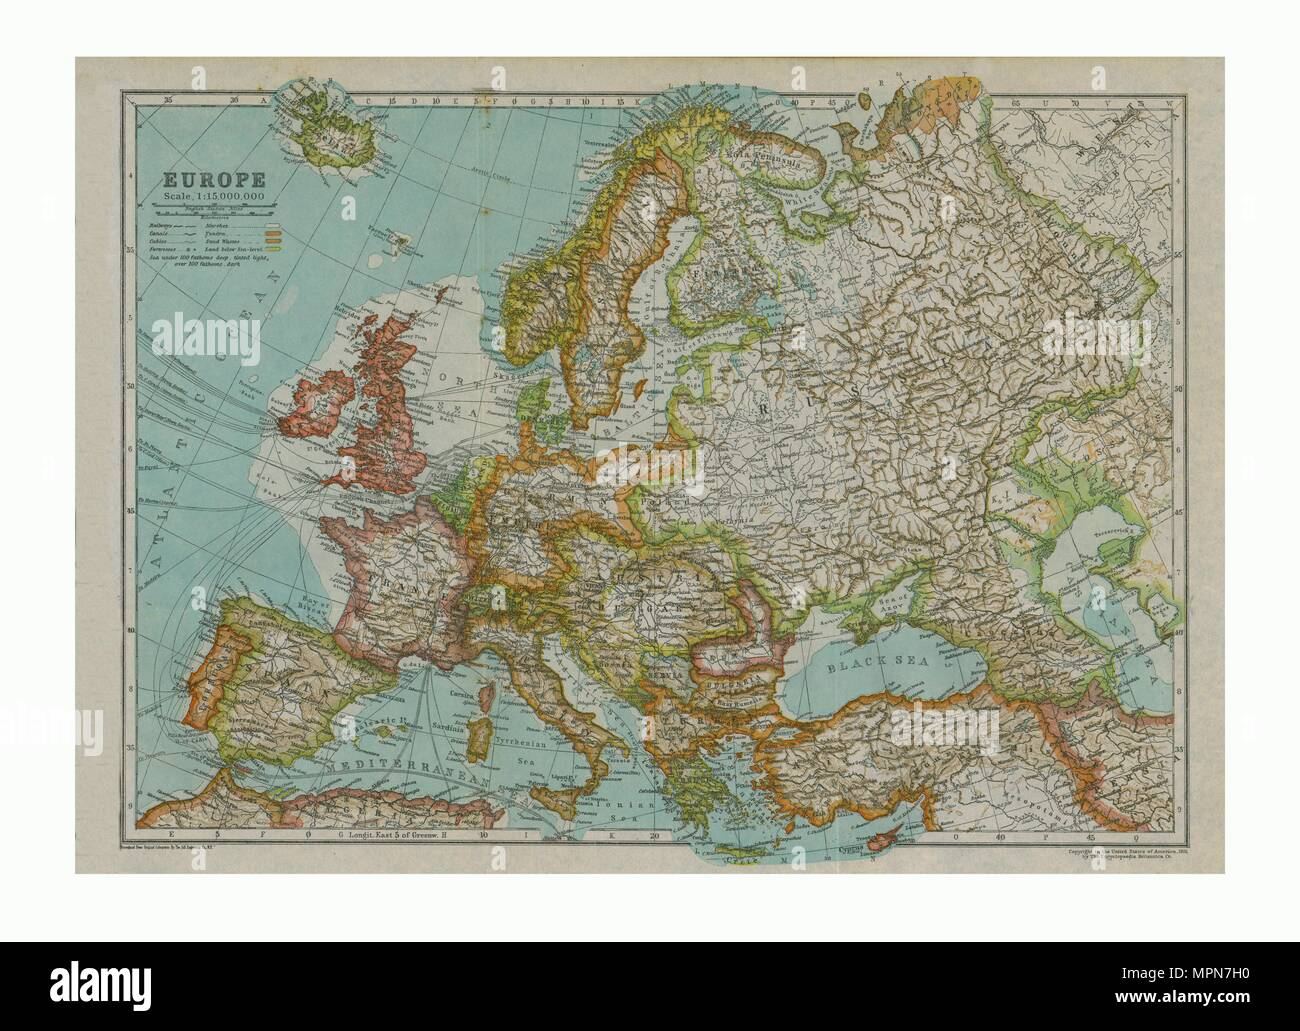 Map of Europe, c1910. Artist: Gull Engraving Company. - Stock Image